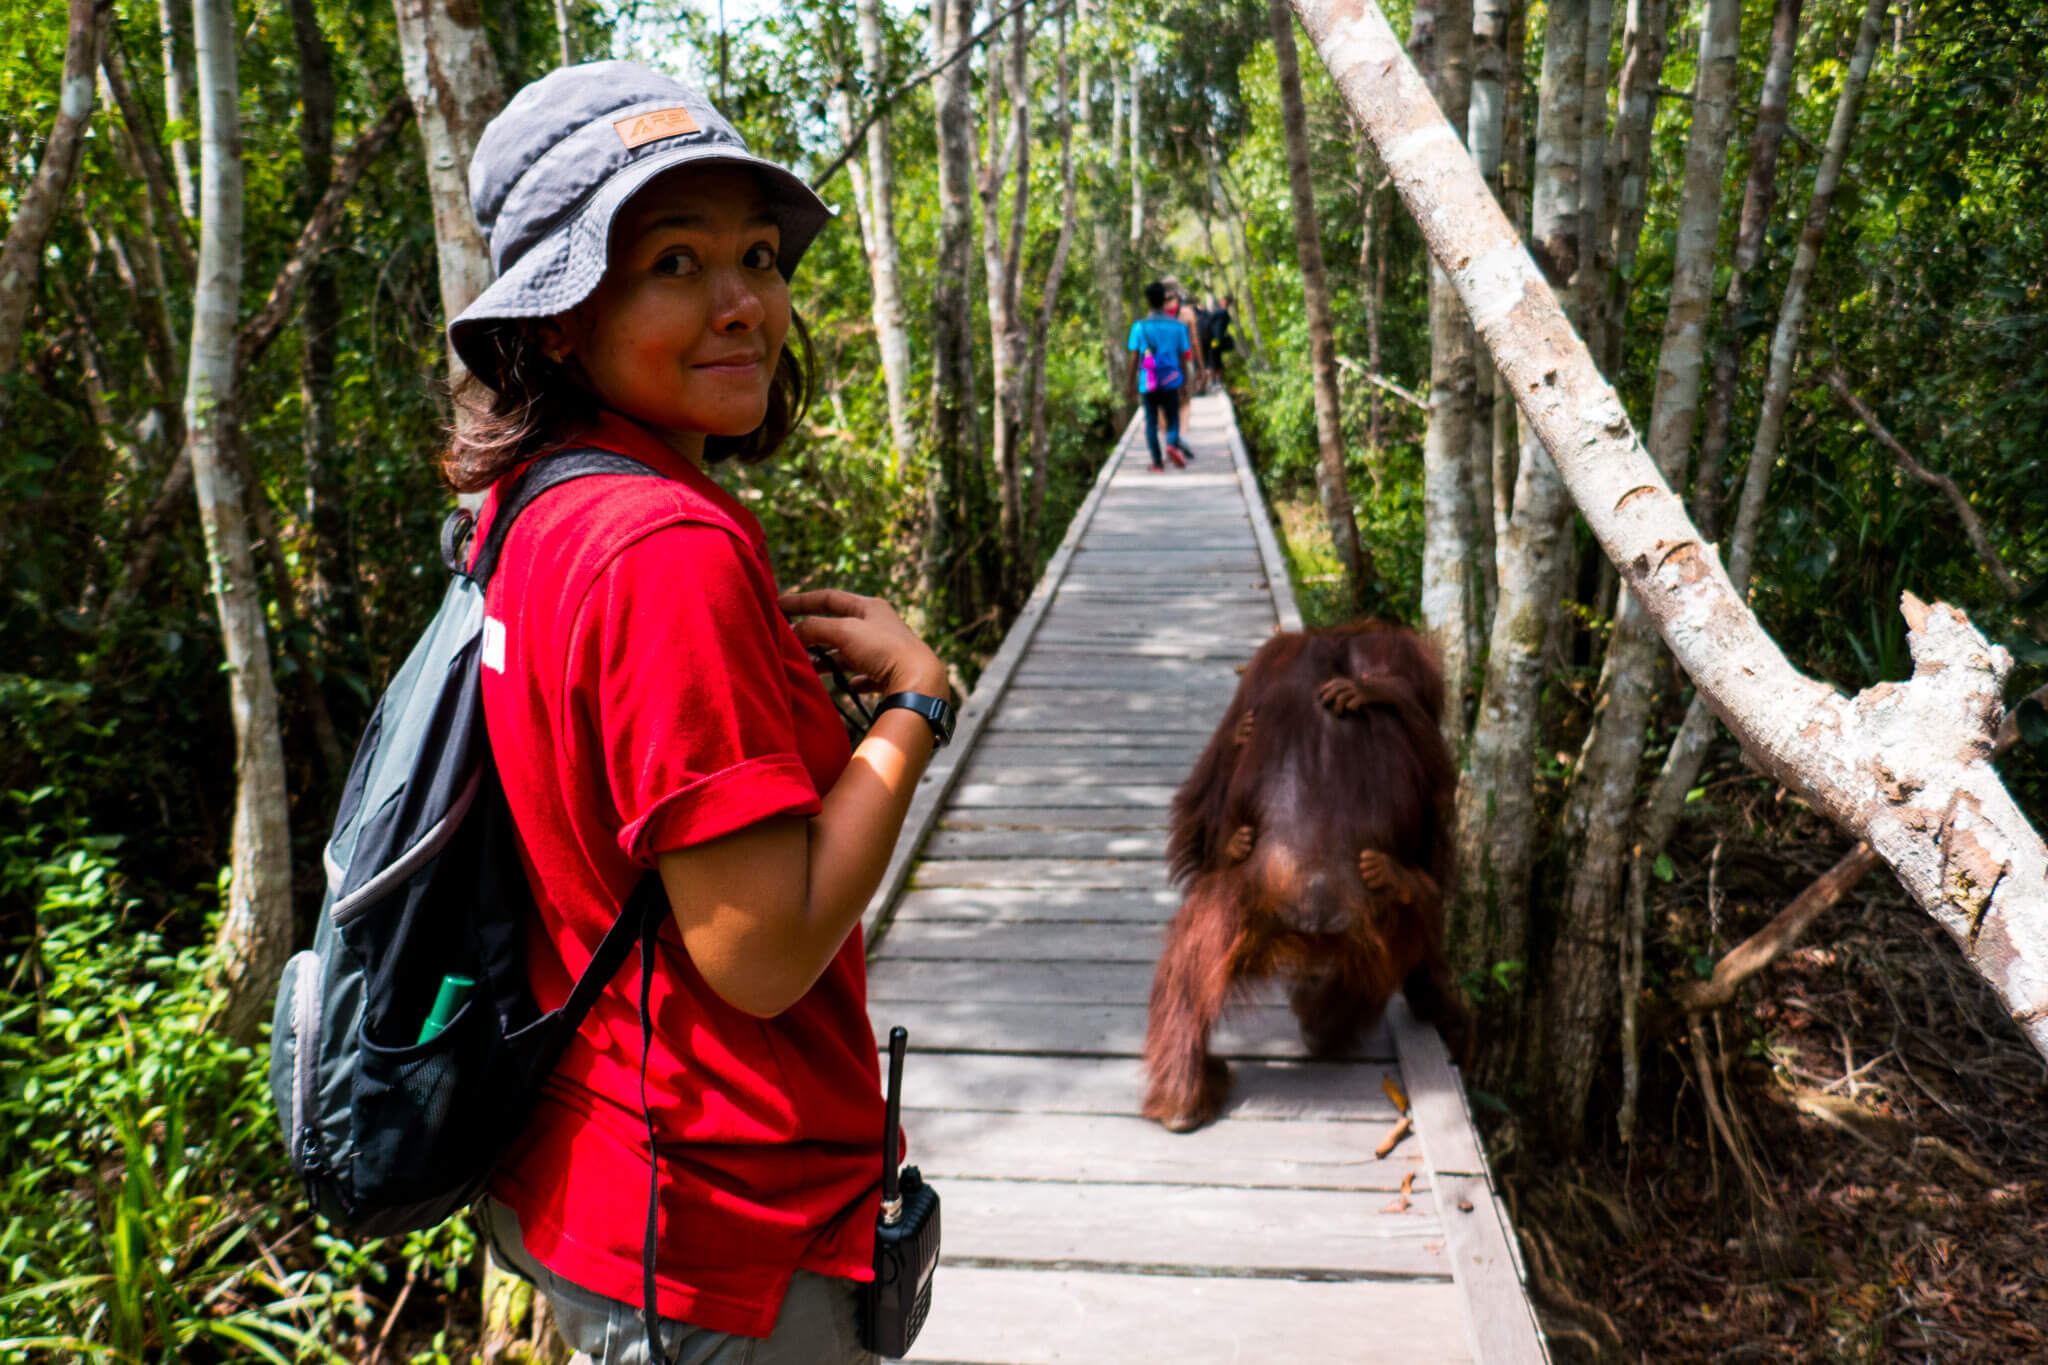 Camp Leakey in Tanjung Puting, Borneo